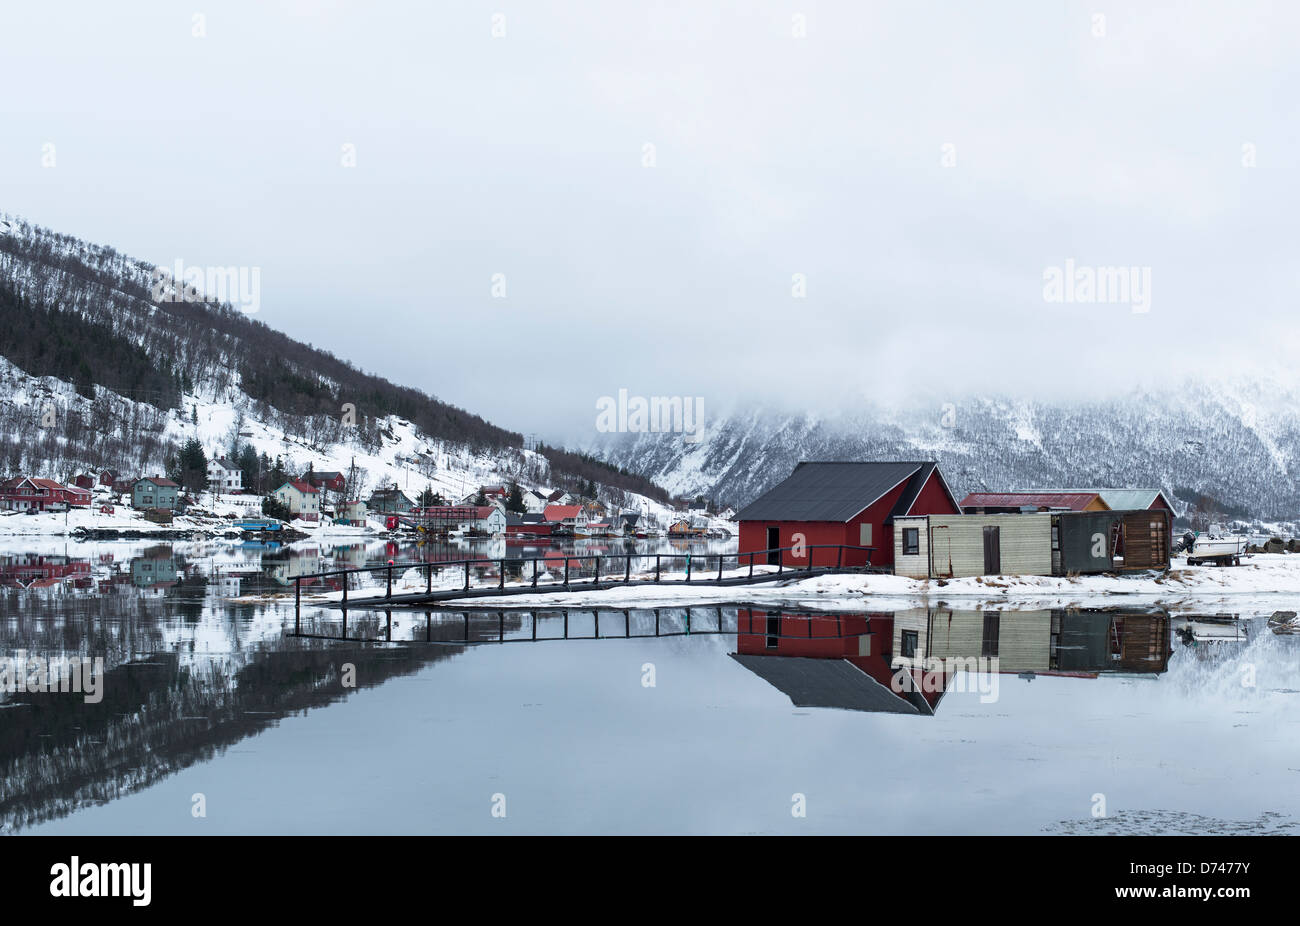 Reflections of houses in the perfectly still water of a bay in Norway - Stock Image